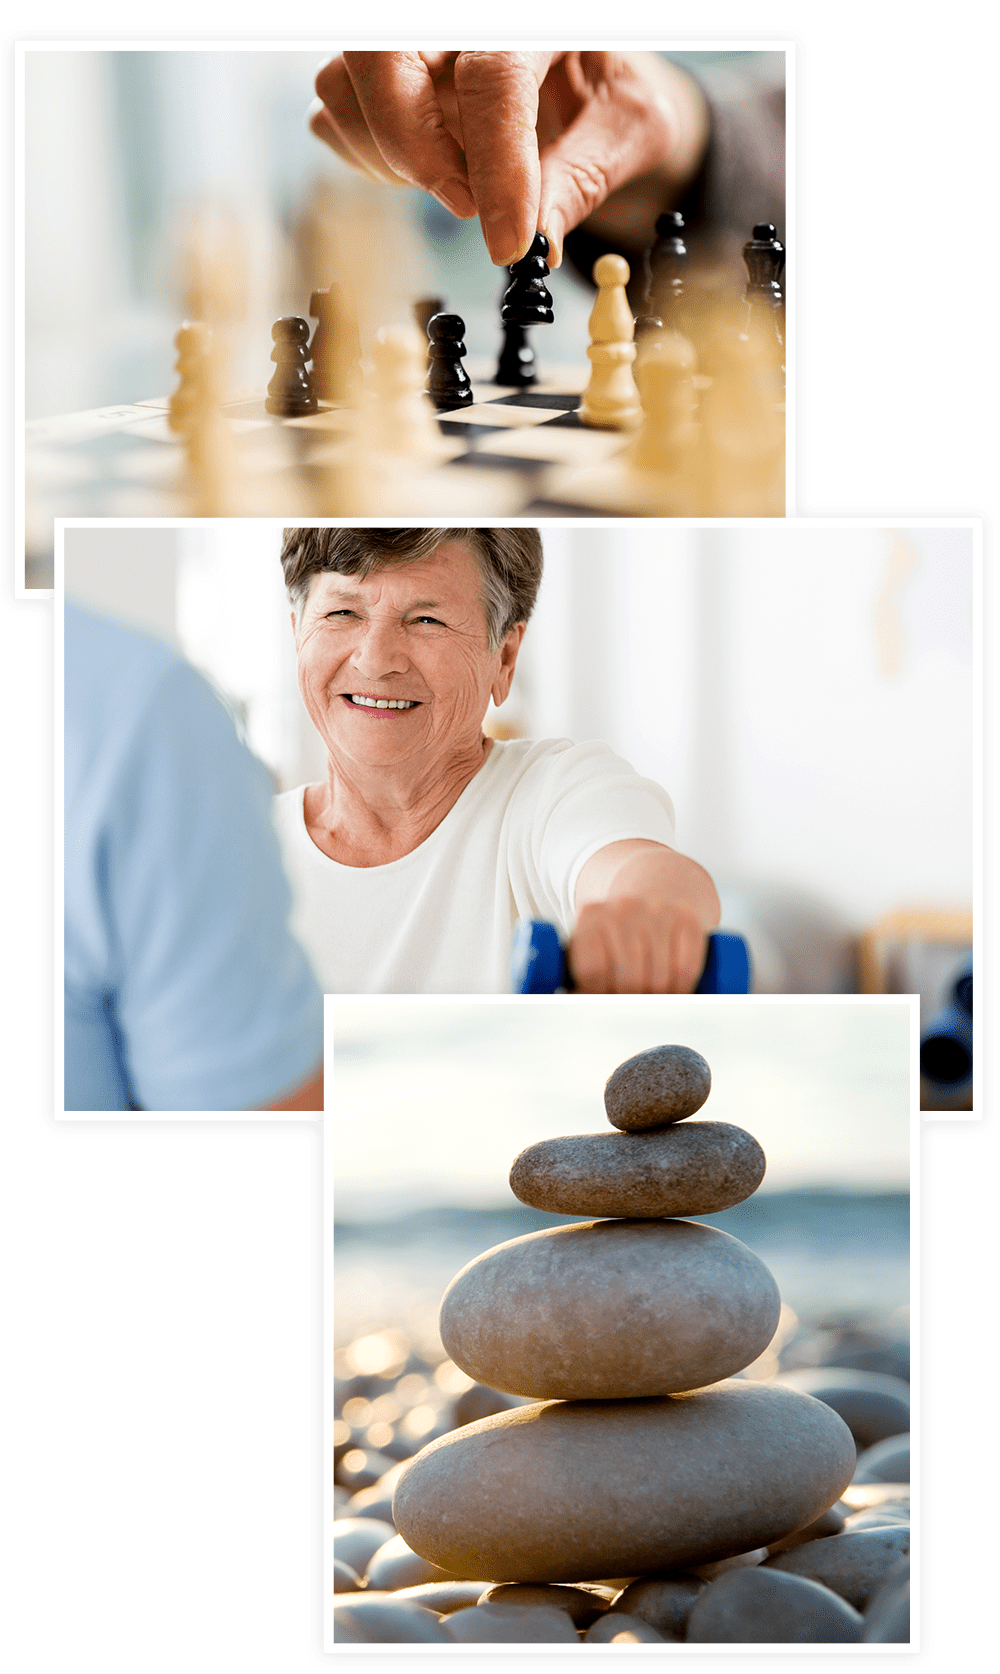 We offer a variety of Senior Lifestyle options at our Clearwater at South Bay communities